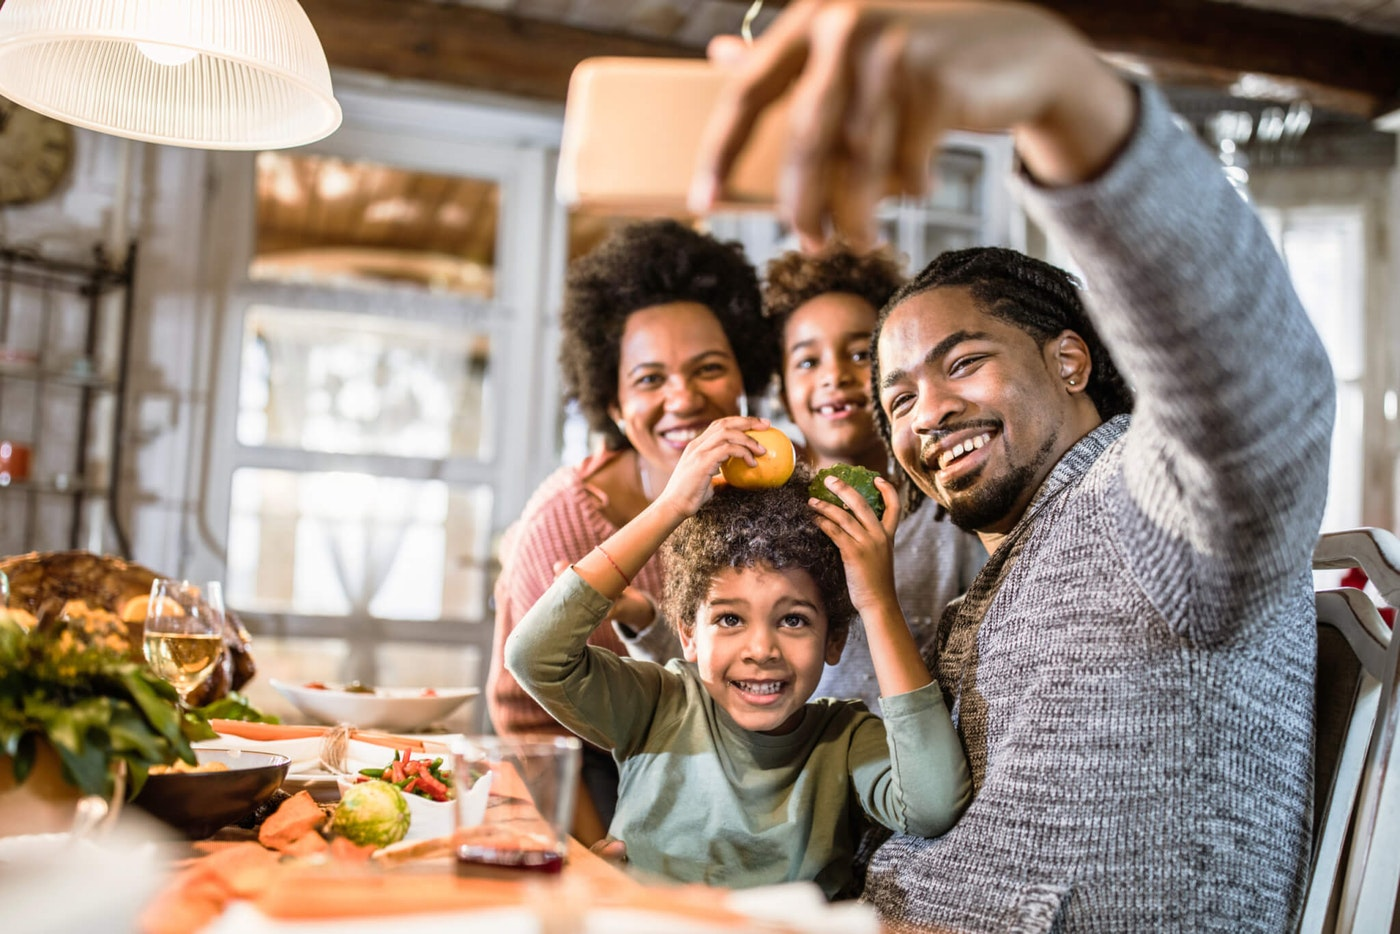 Even though Thanksgiving may look different this year, that doesn't mean it can't be a memorable experience. Photo by skynesher/Getty Images